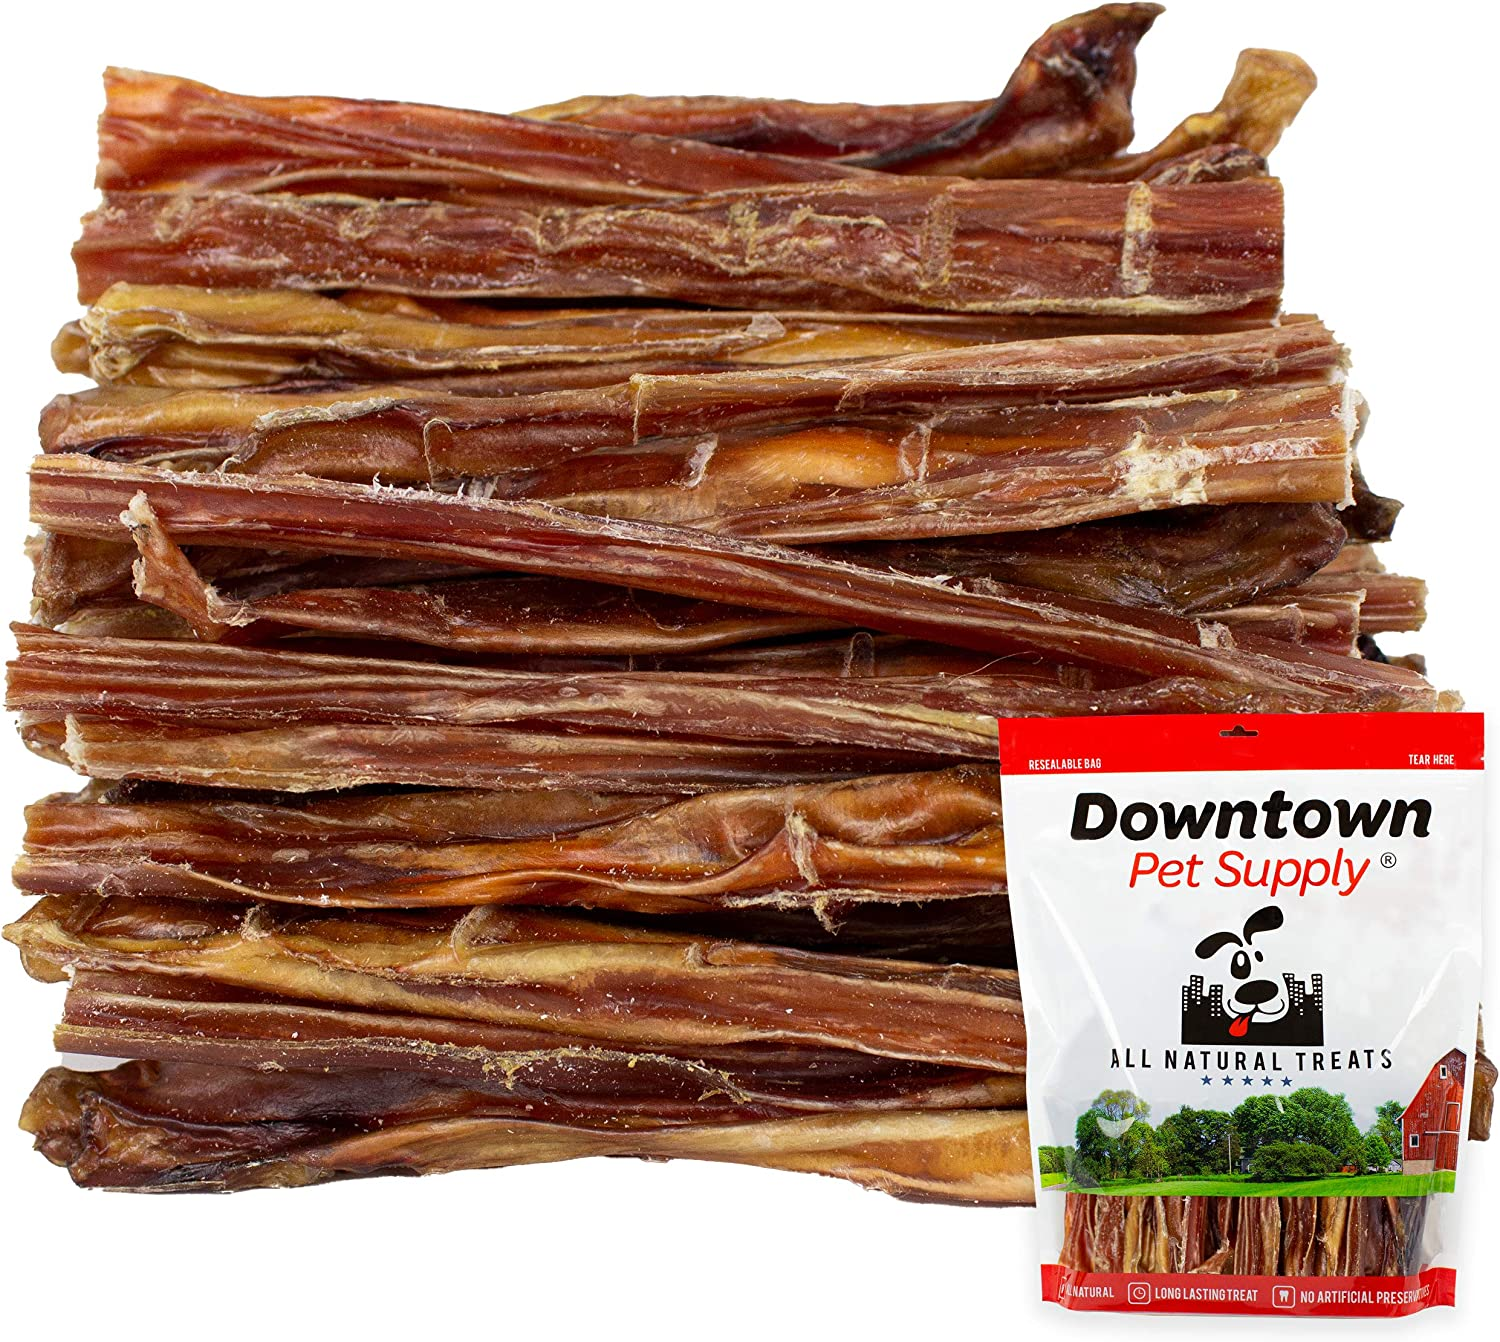 Downtown Pet Supply 6 Junior American Thin USA Bully Sticks for Dogs (Bulk Bags by Weight) Made in USA - Odorless All Natural Dog Dental Chew Treats (6 Inch, 0.5 LB)